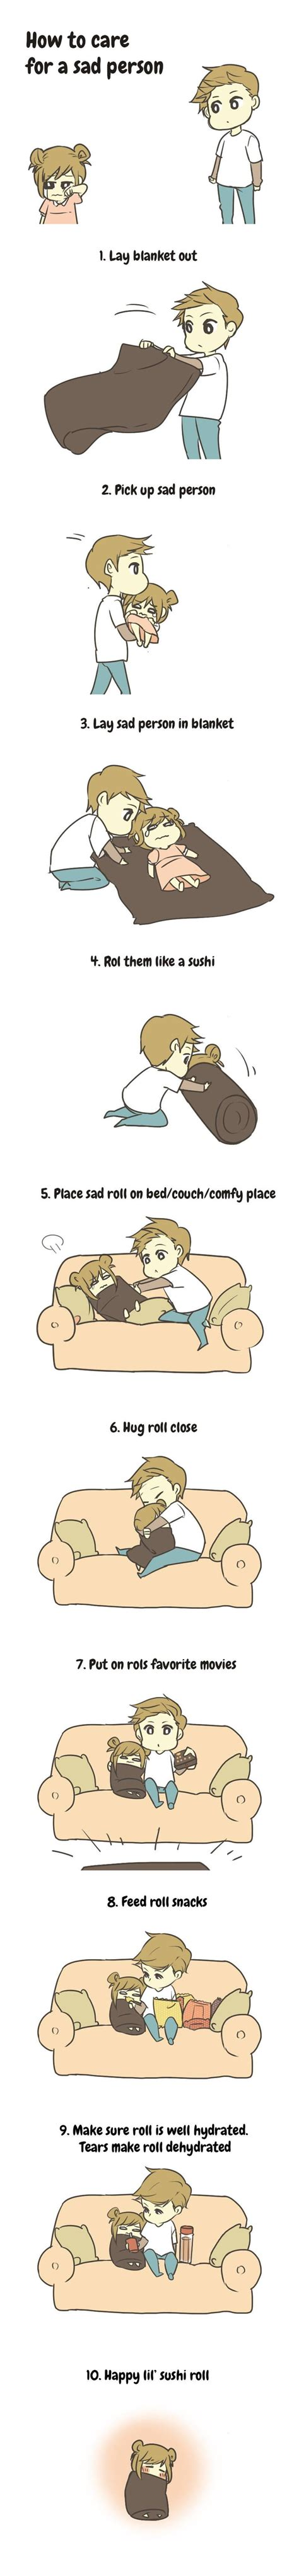 how to care for a how to care for a sad person 9gag